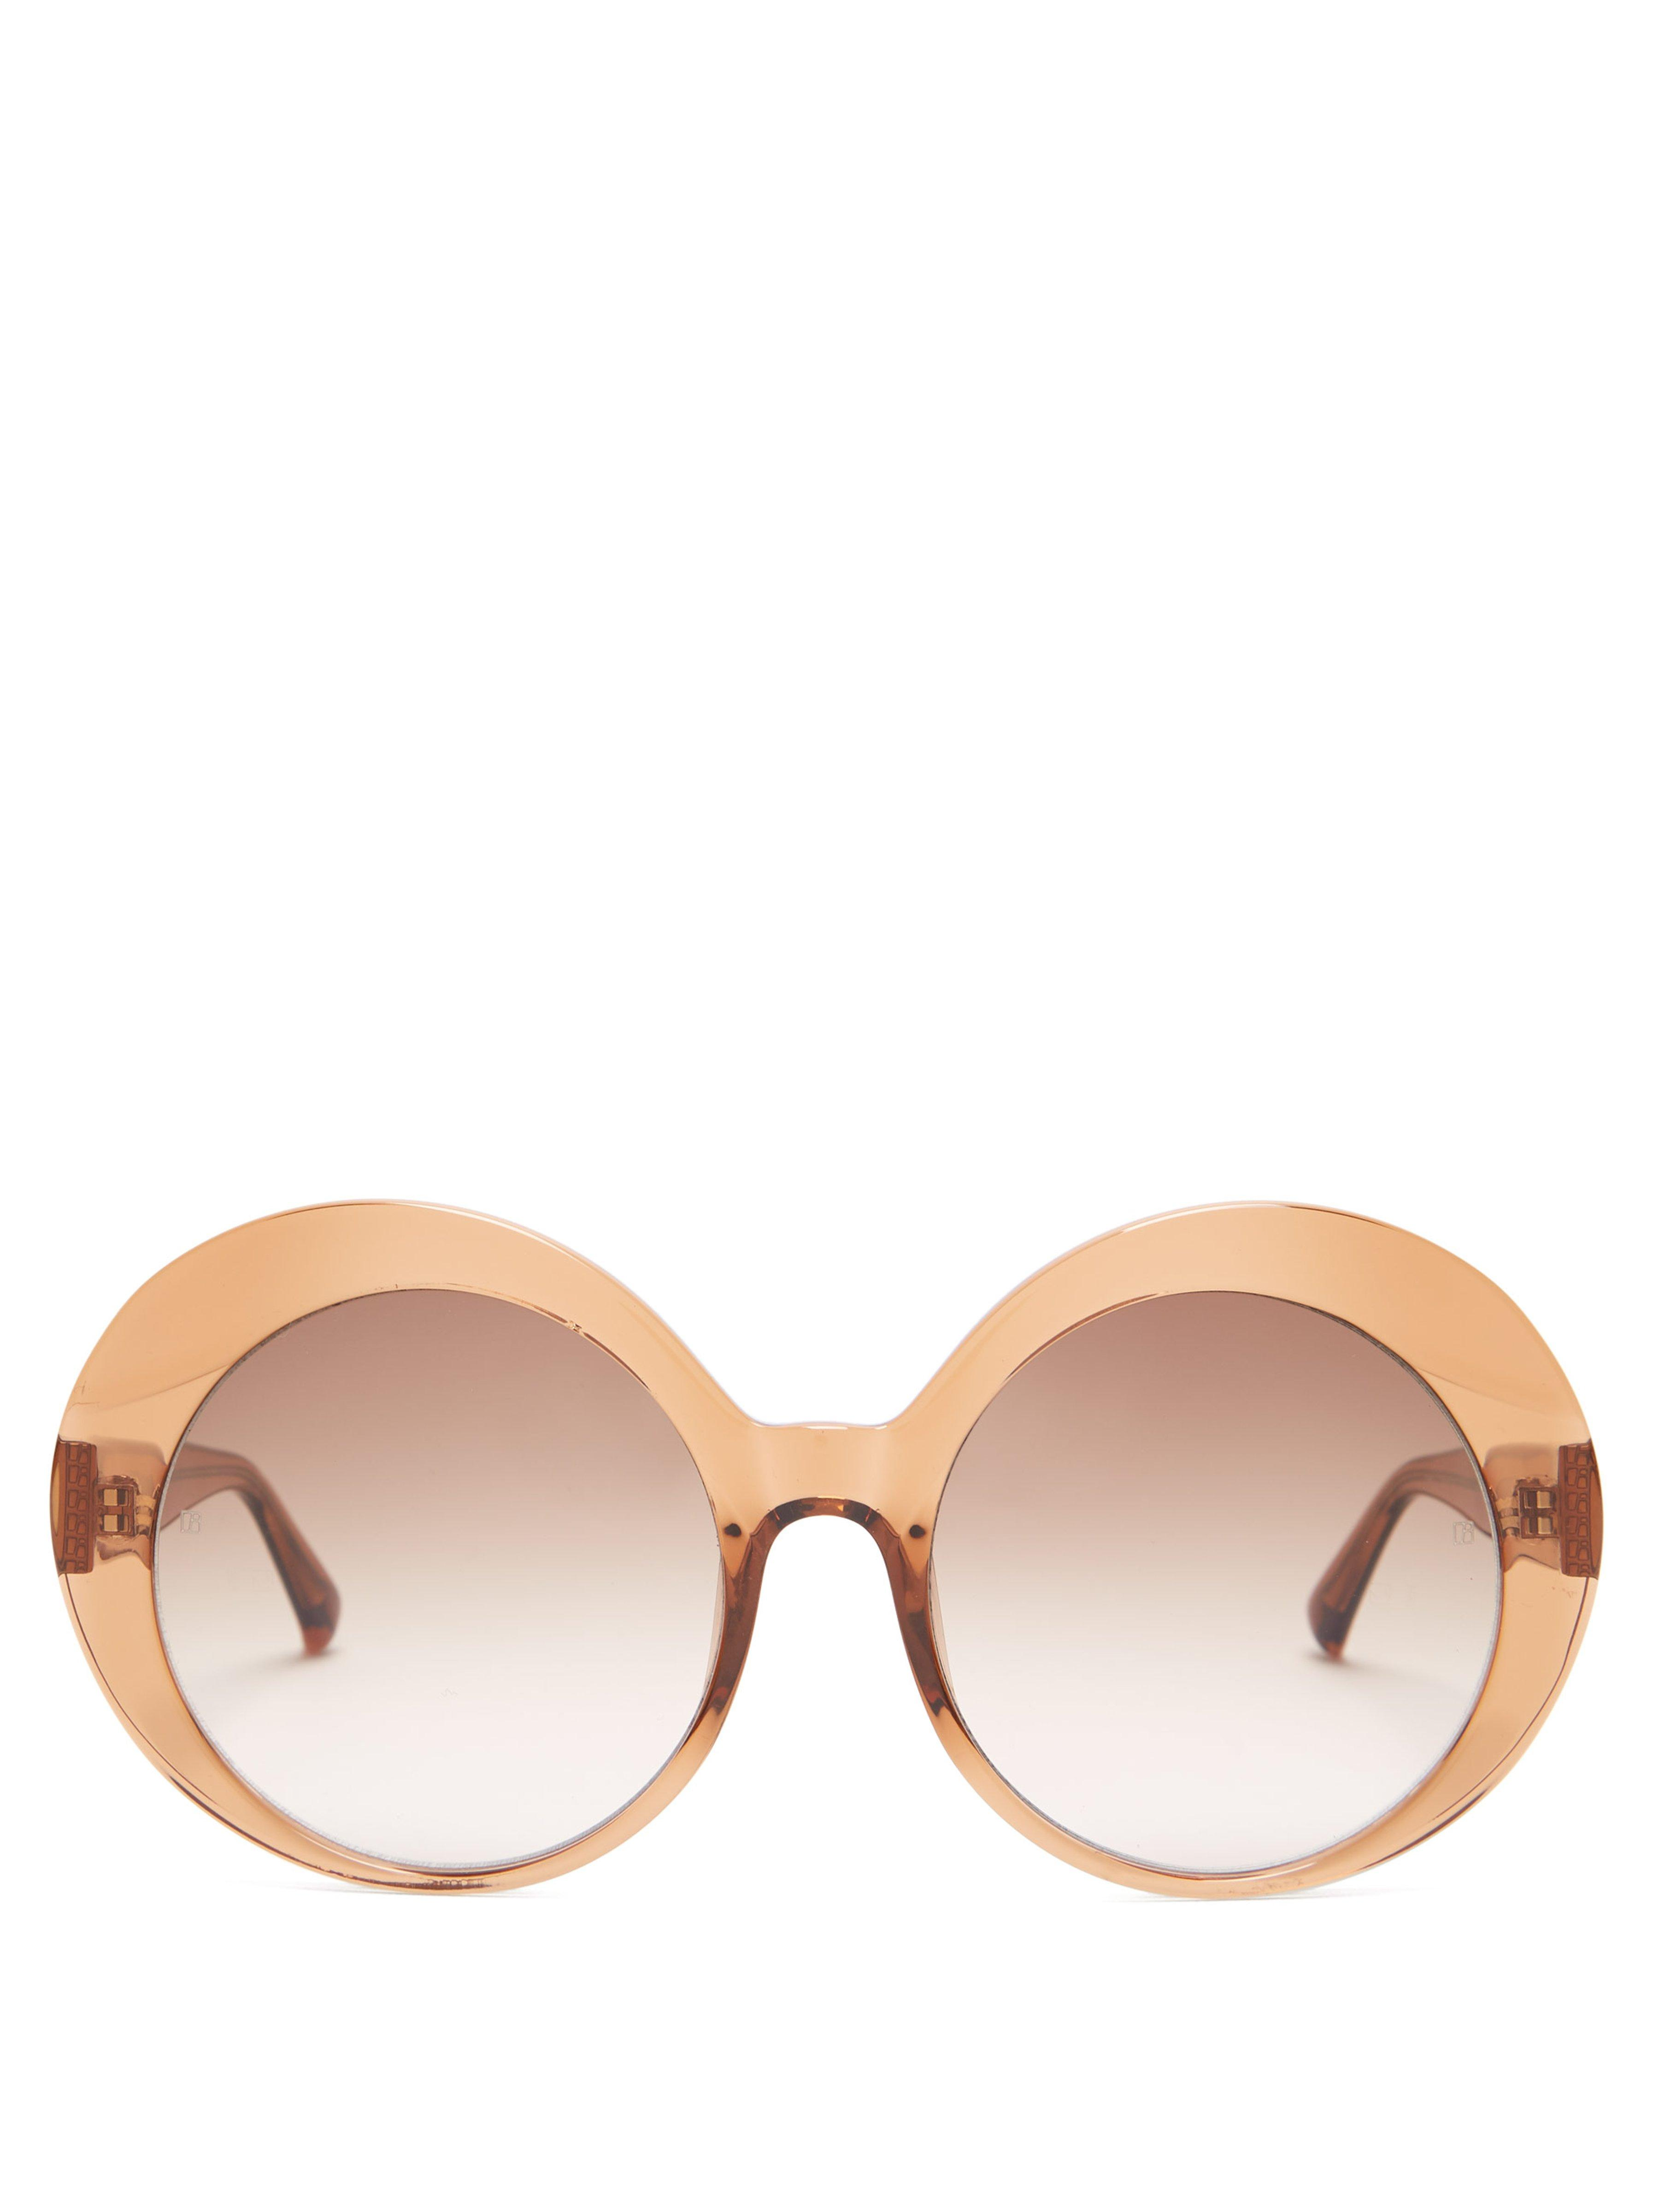 3e562a8578 Linda Farrow Oversized Rounded Acetate Sunglasses in Brown - Lyst